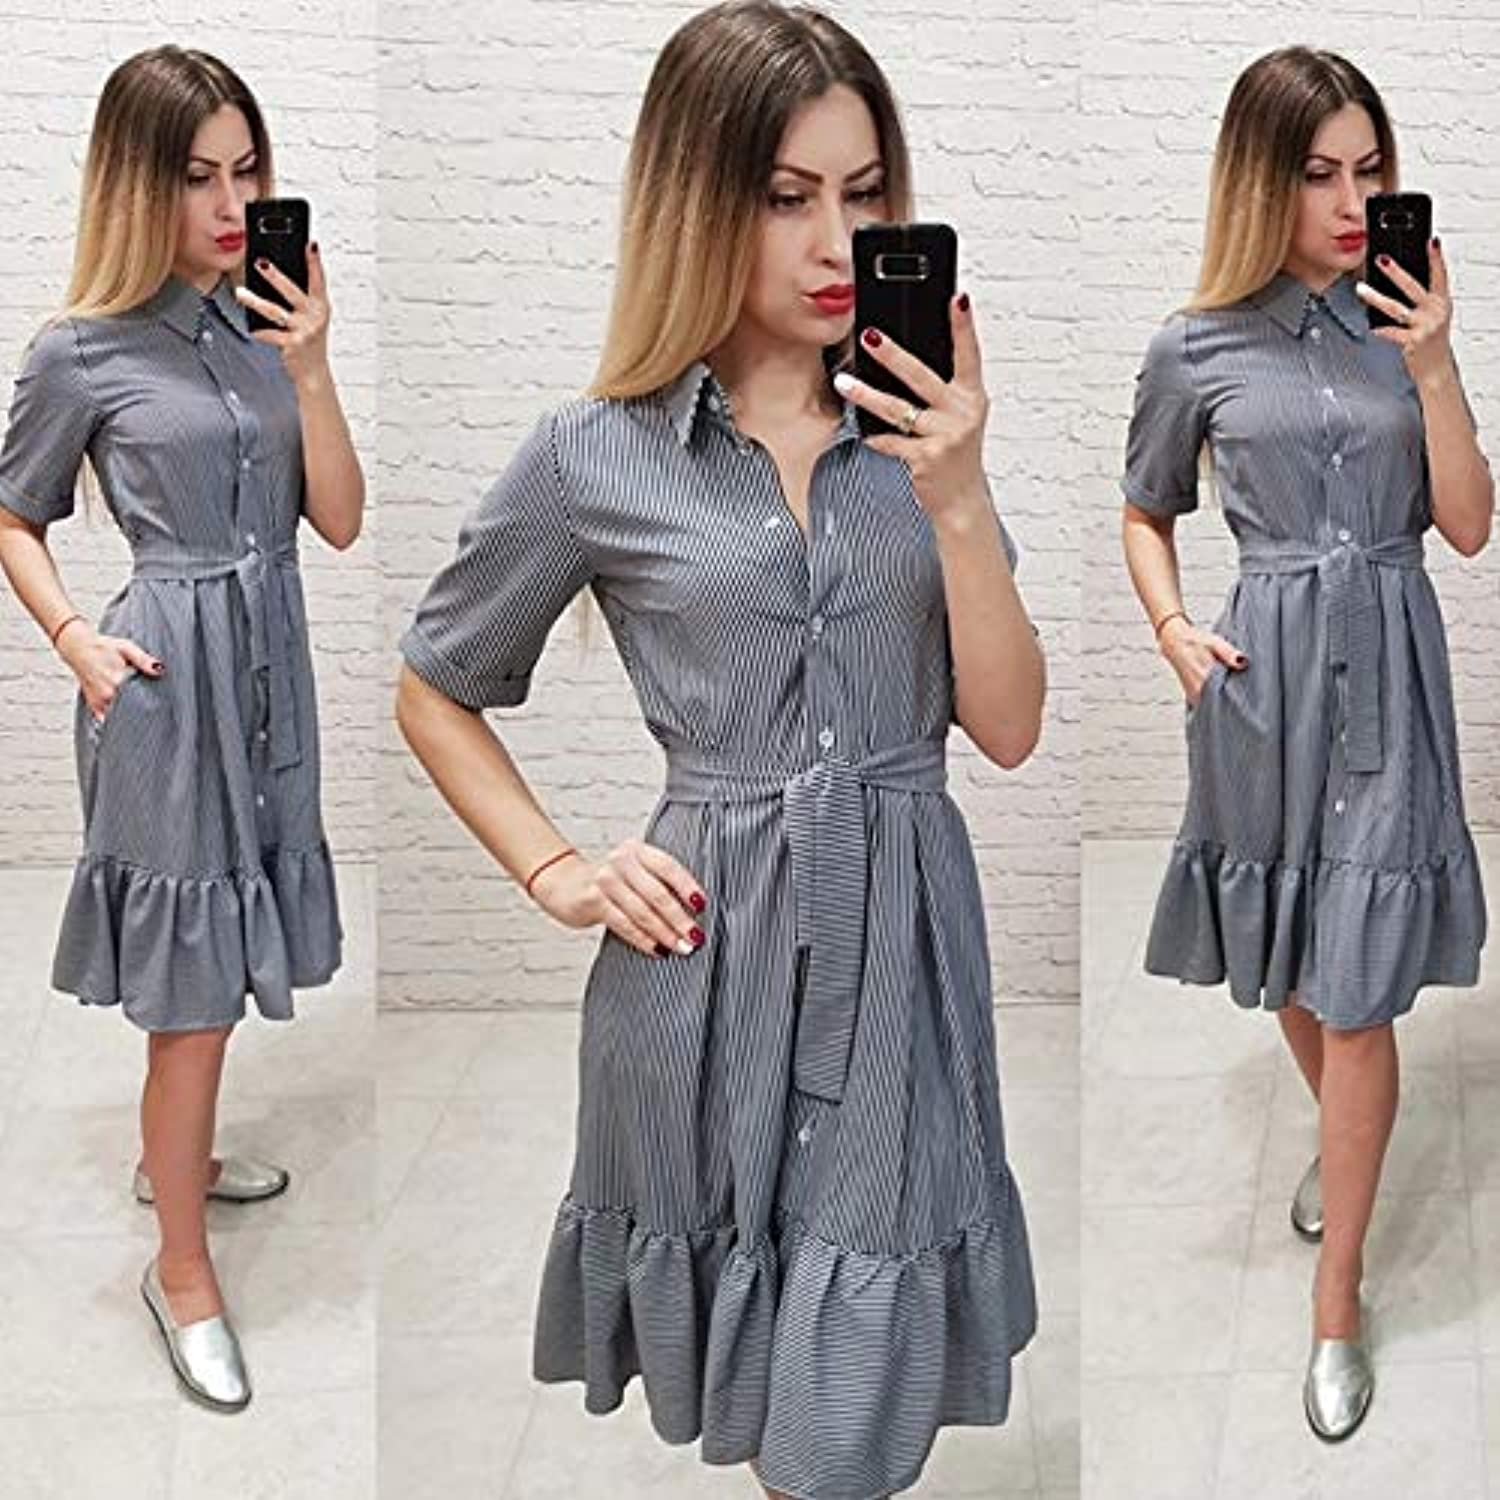 YKDDKK Women Striped Ruffled Sashes Party Dress Ladies Short Sleeve Turn Down Collar Summer Dress Women Vintage A Line Elegant Dress Elegant Women's Skirts Add Temperament To You